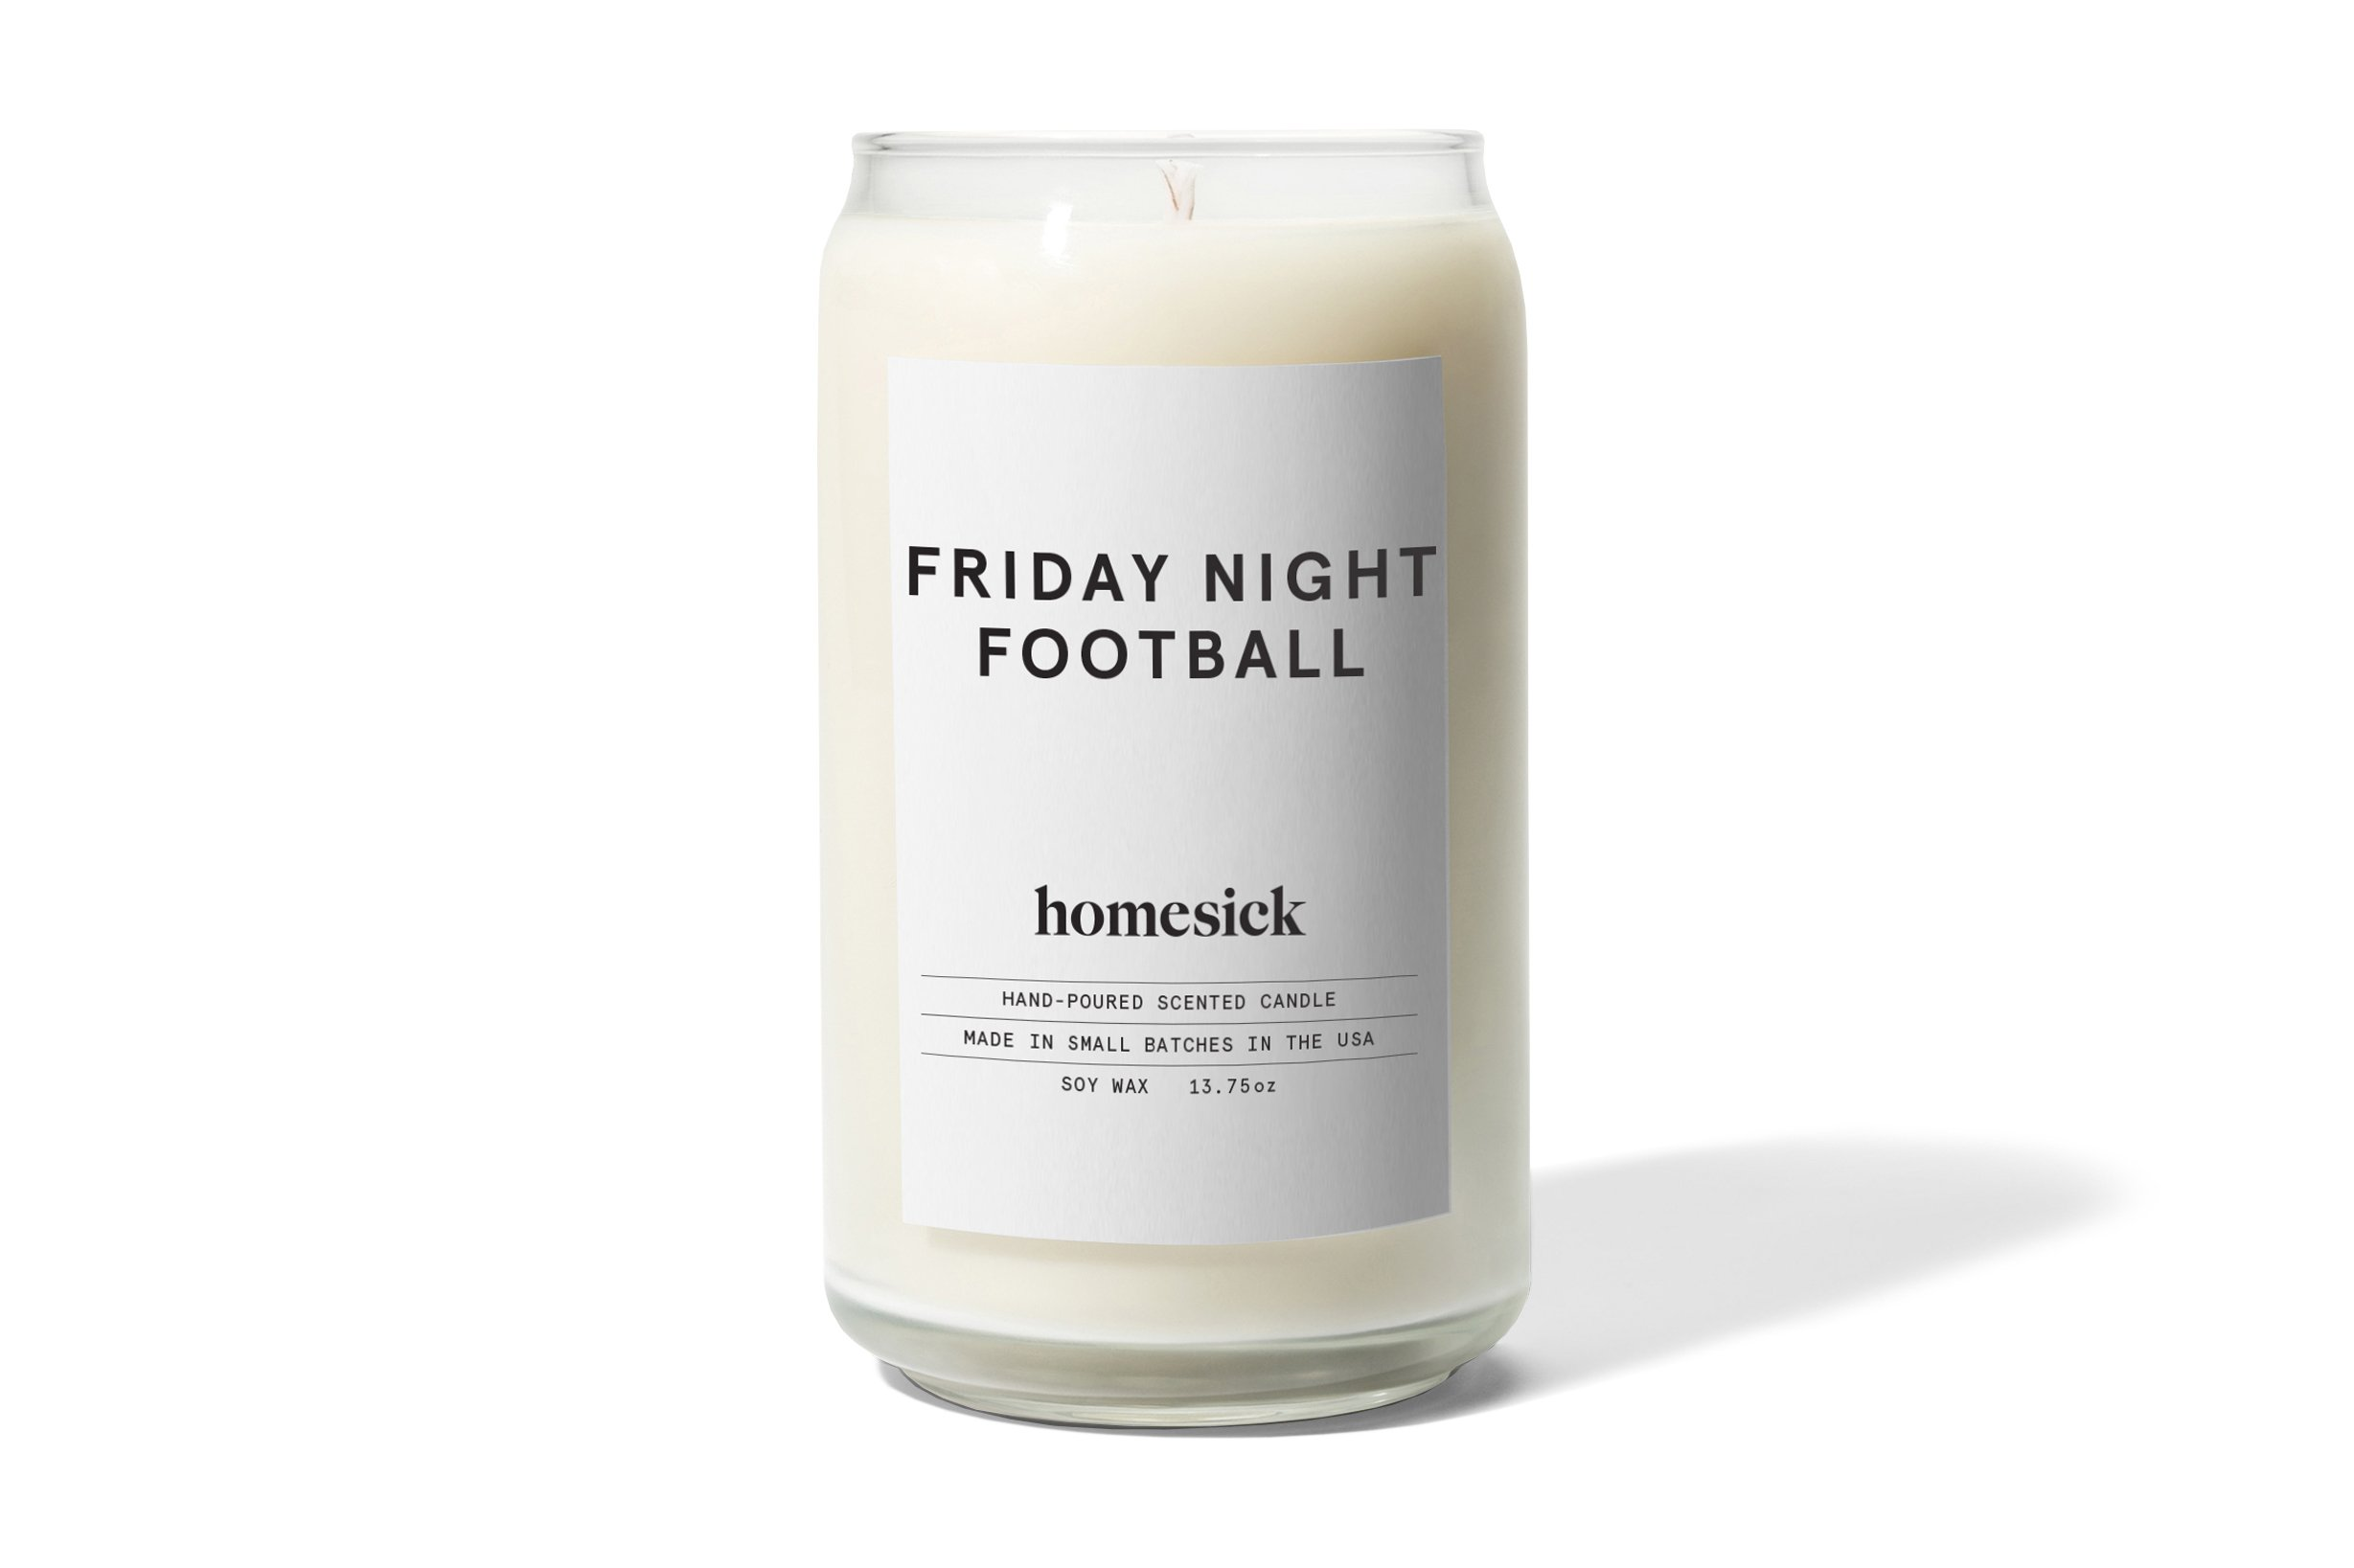 Homesick Scented Candle, Friday Night - Notes of: Grass, Leather, and Lemon 60-80 hour burn time All natural soy wax - living-room-decor, living-room, candles - 713ElJqTd7L -